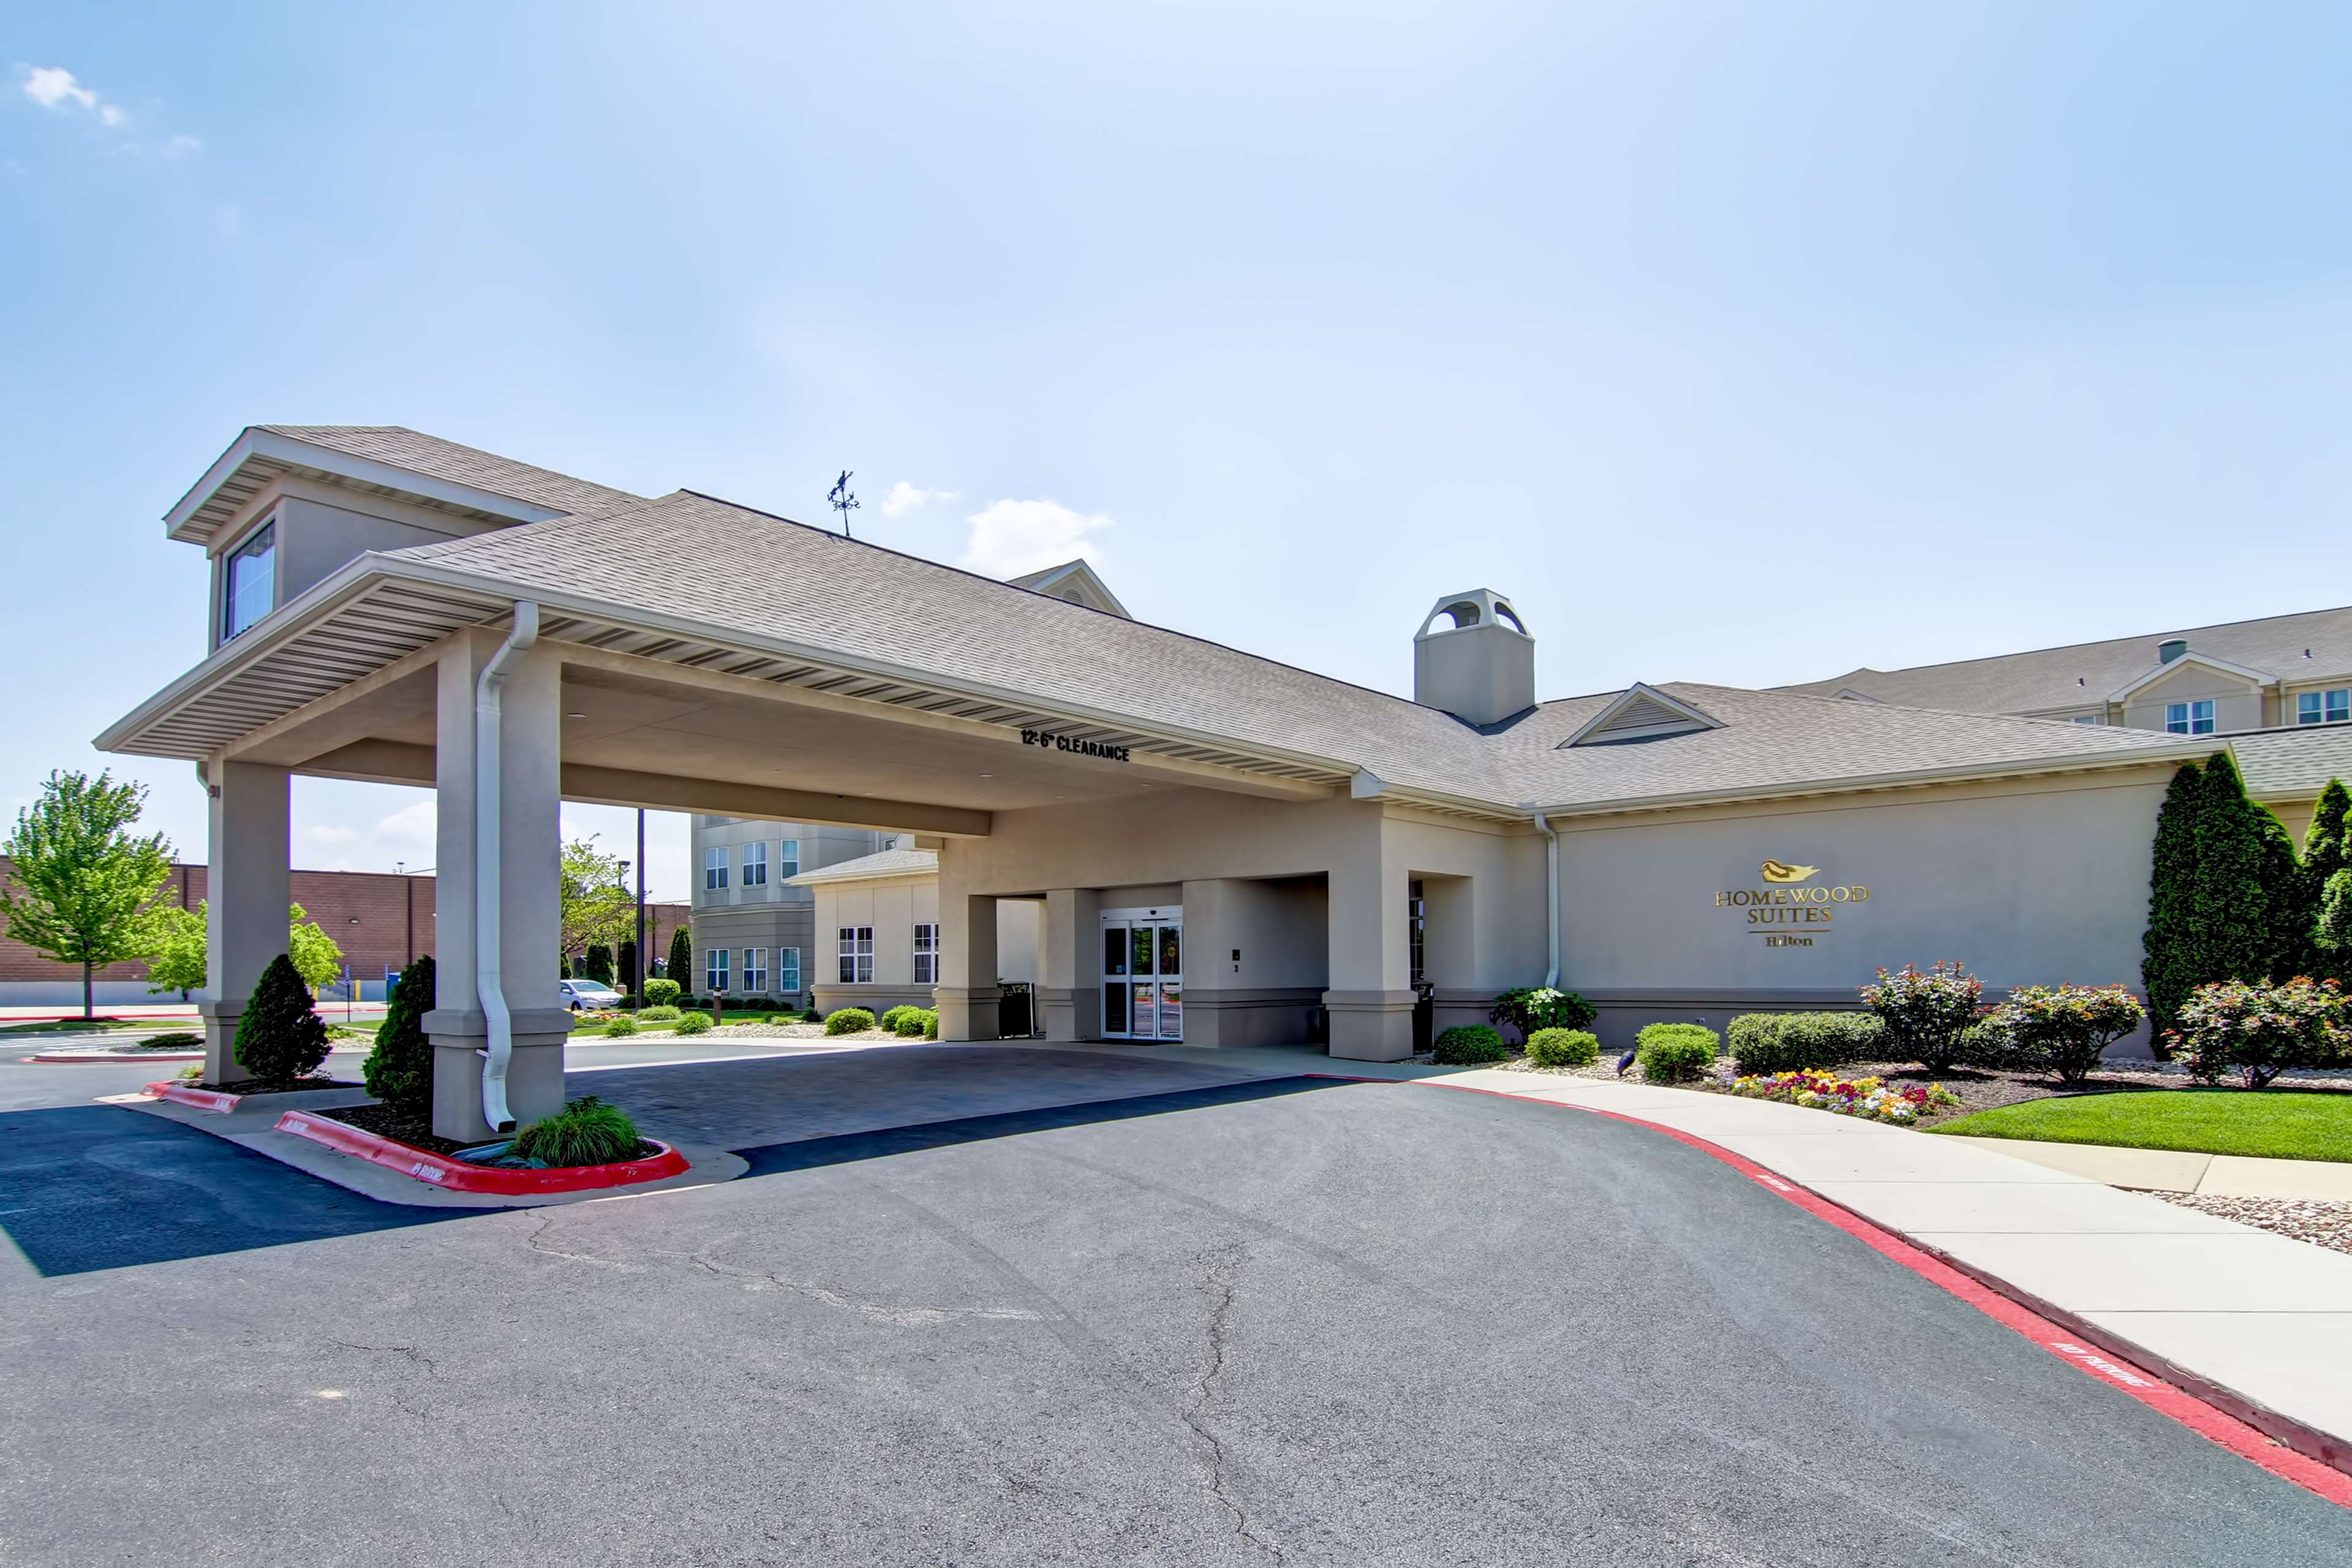 Homewood Suites by Hilton Bentonville-Rogers image 0